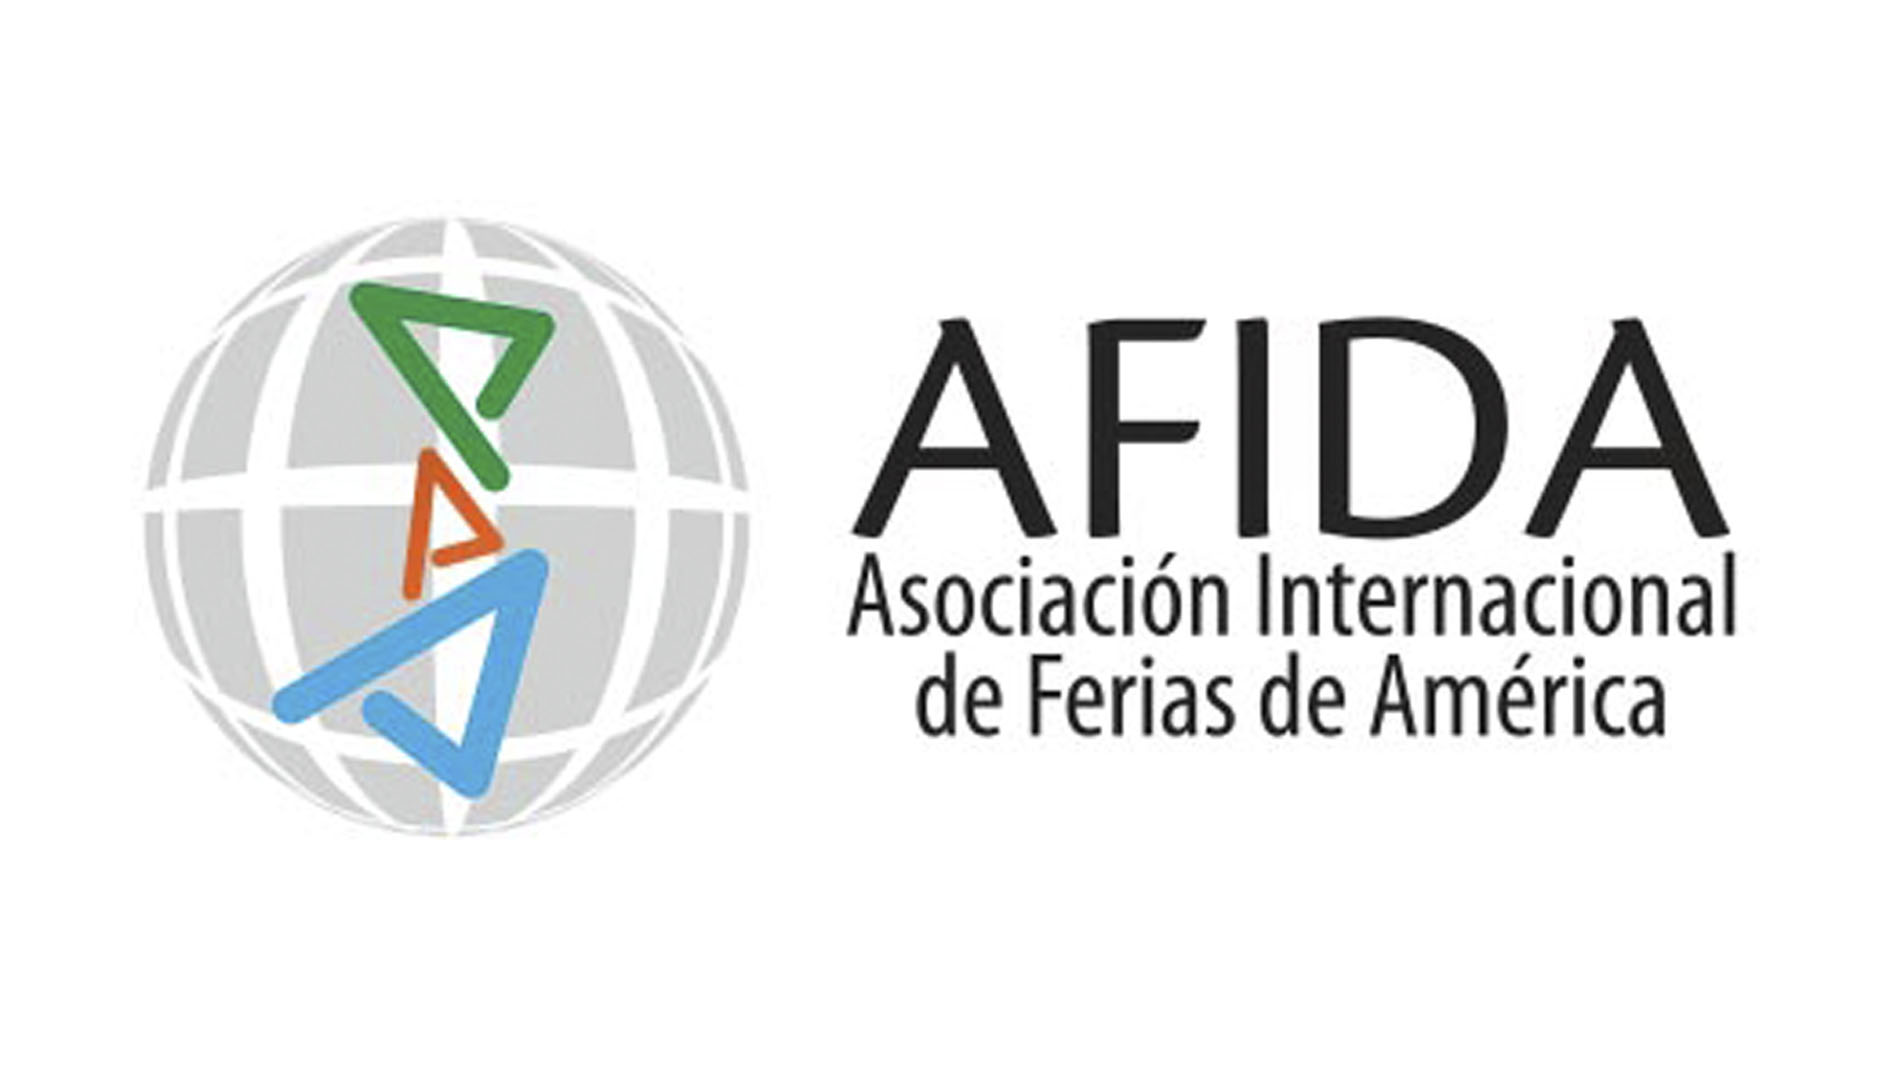 International Association of Trade Fairs of America